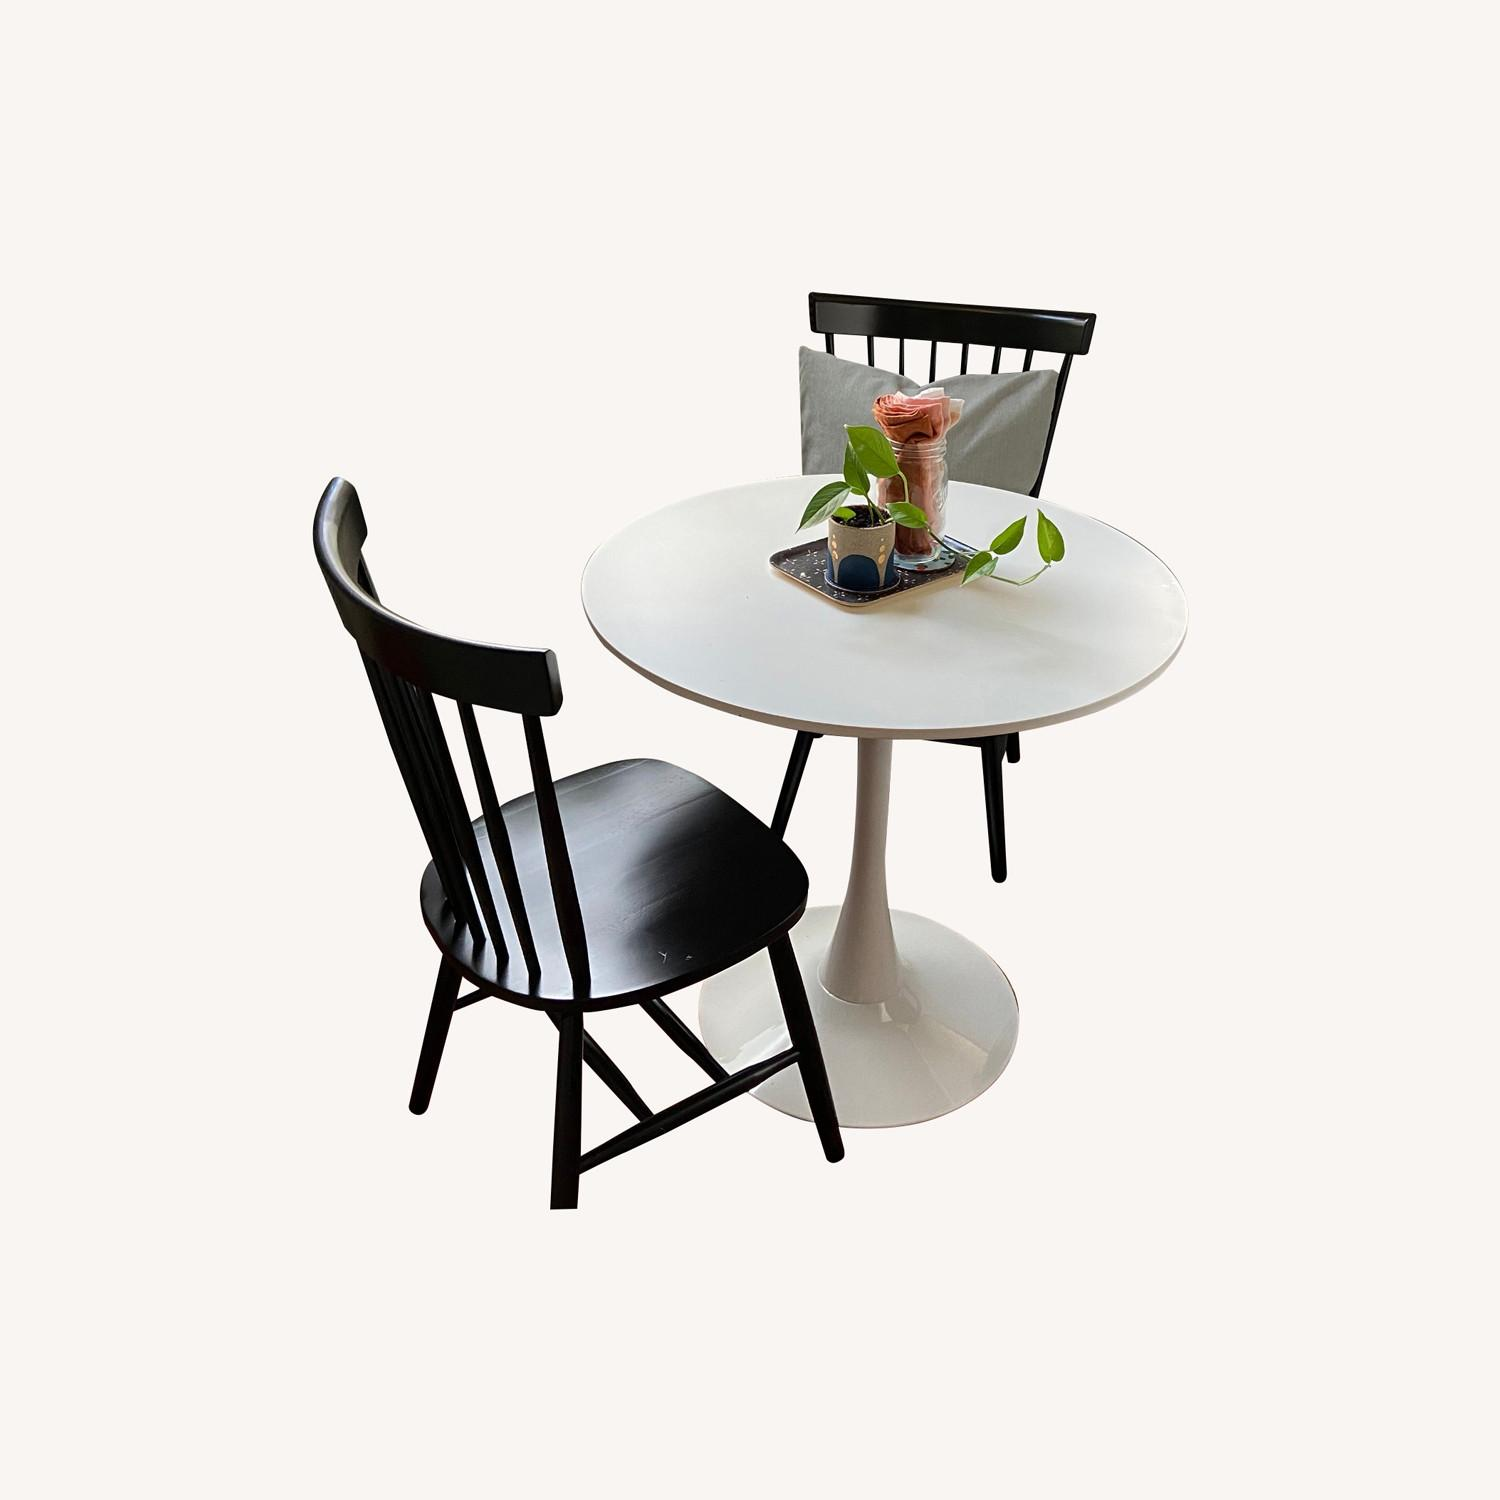 White Dining Table and 2 Black Spindle Chairs - image-0